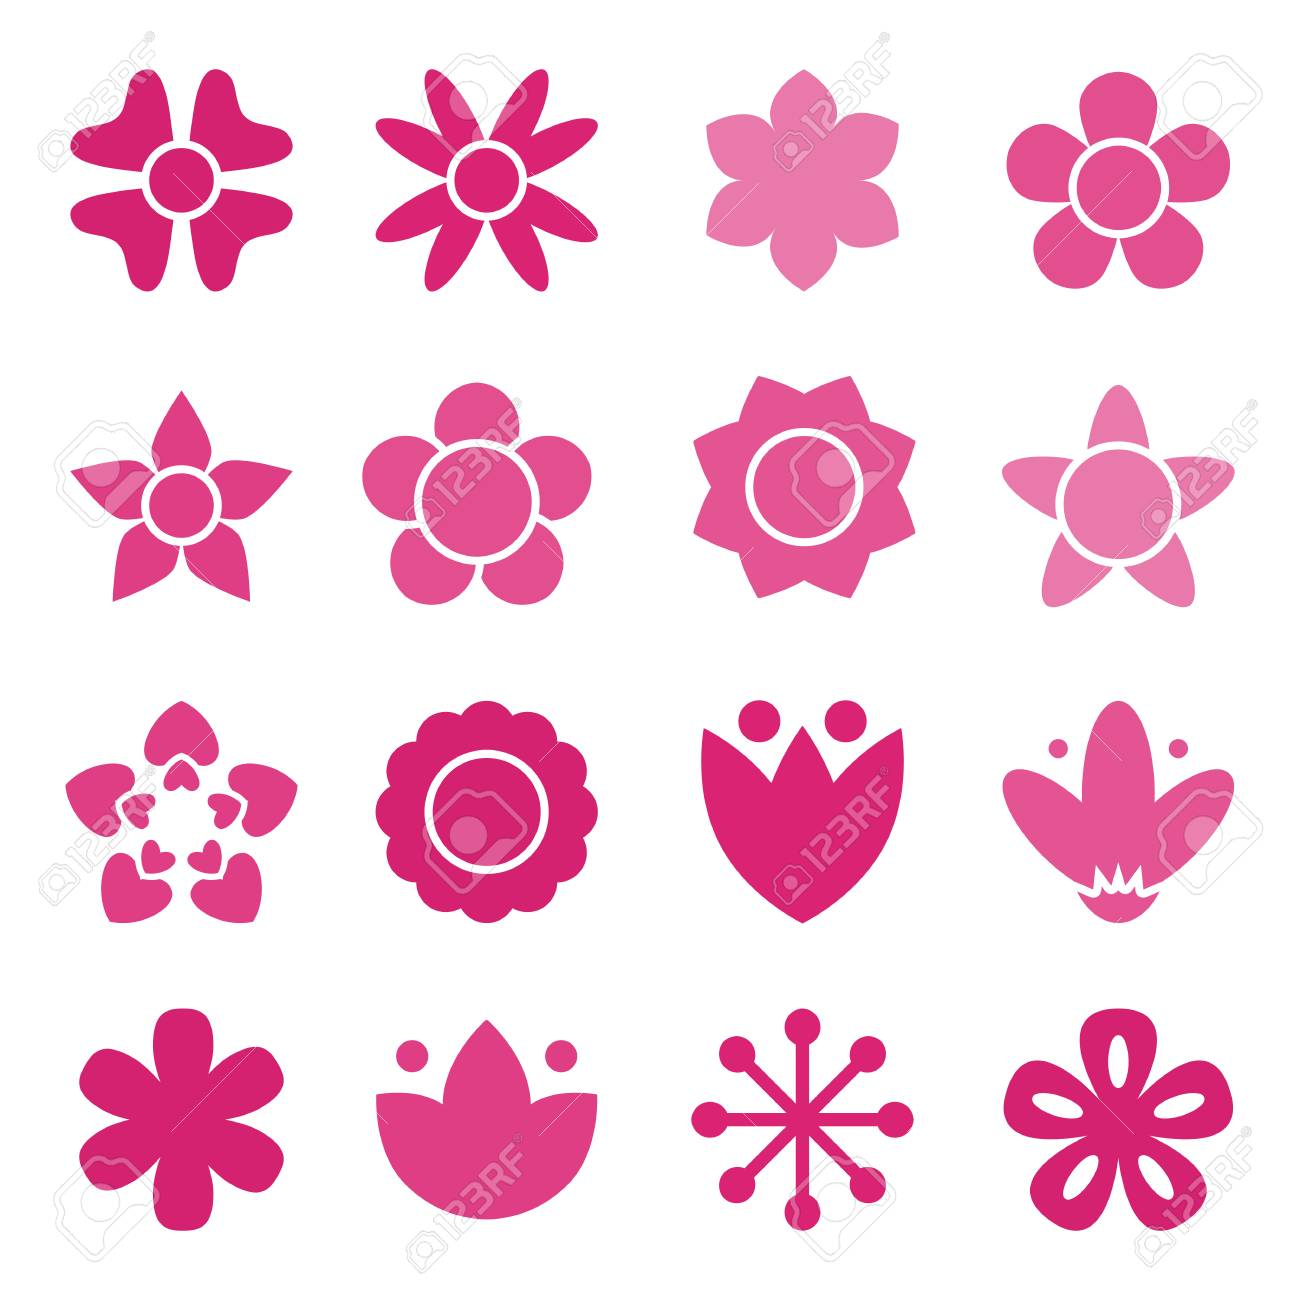 Flower icon collection in flat style daisy symbol or logo flower icon collection in flat style daisy symbol or logo template pictogram biocorpaavc Choice Image